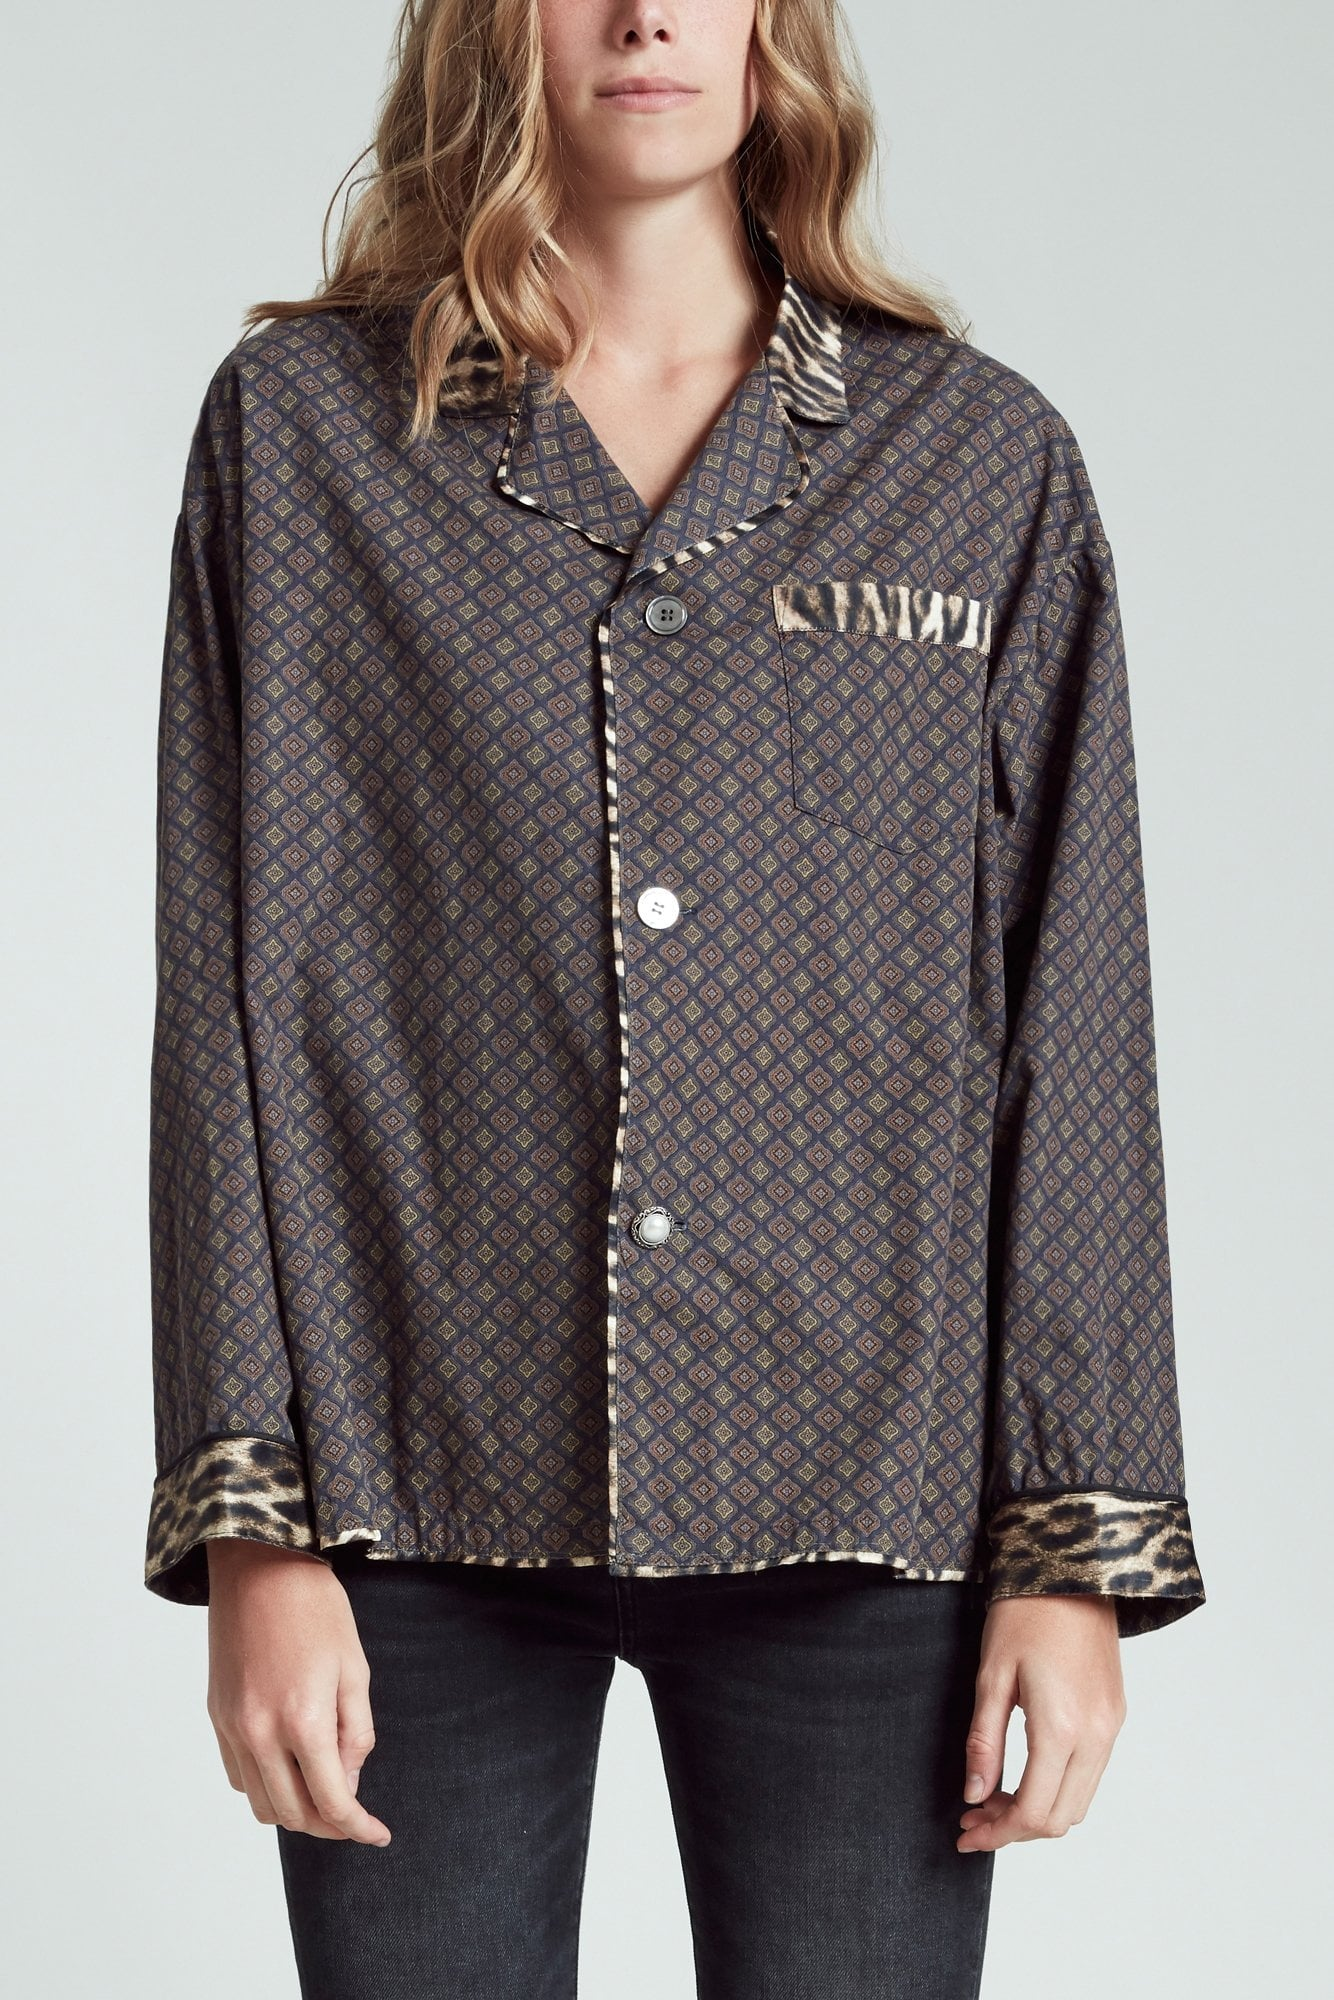 Pajama Top - Navy Pattern with Leopard